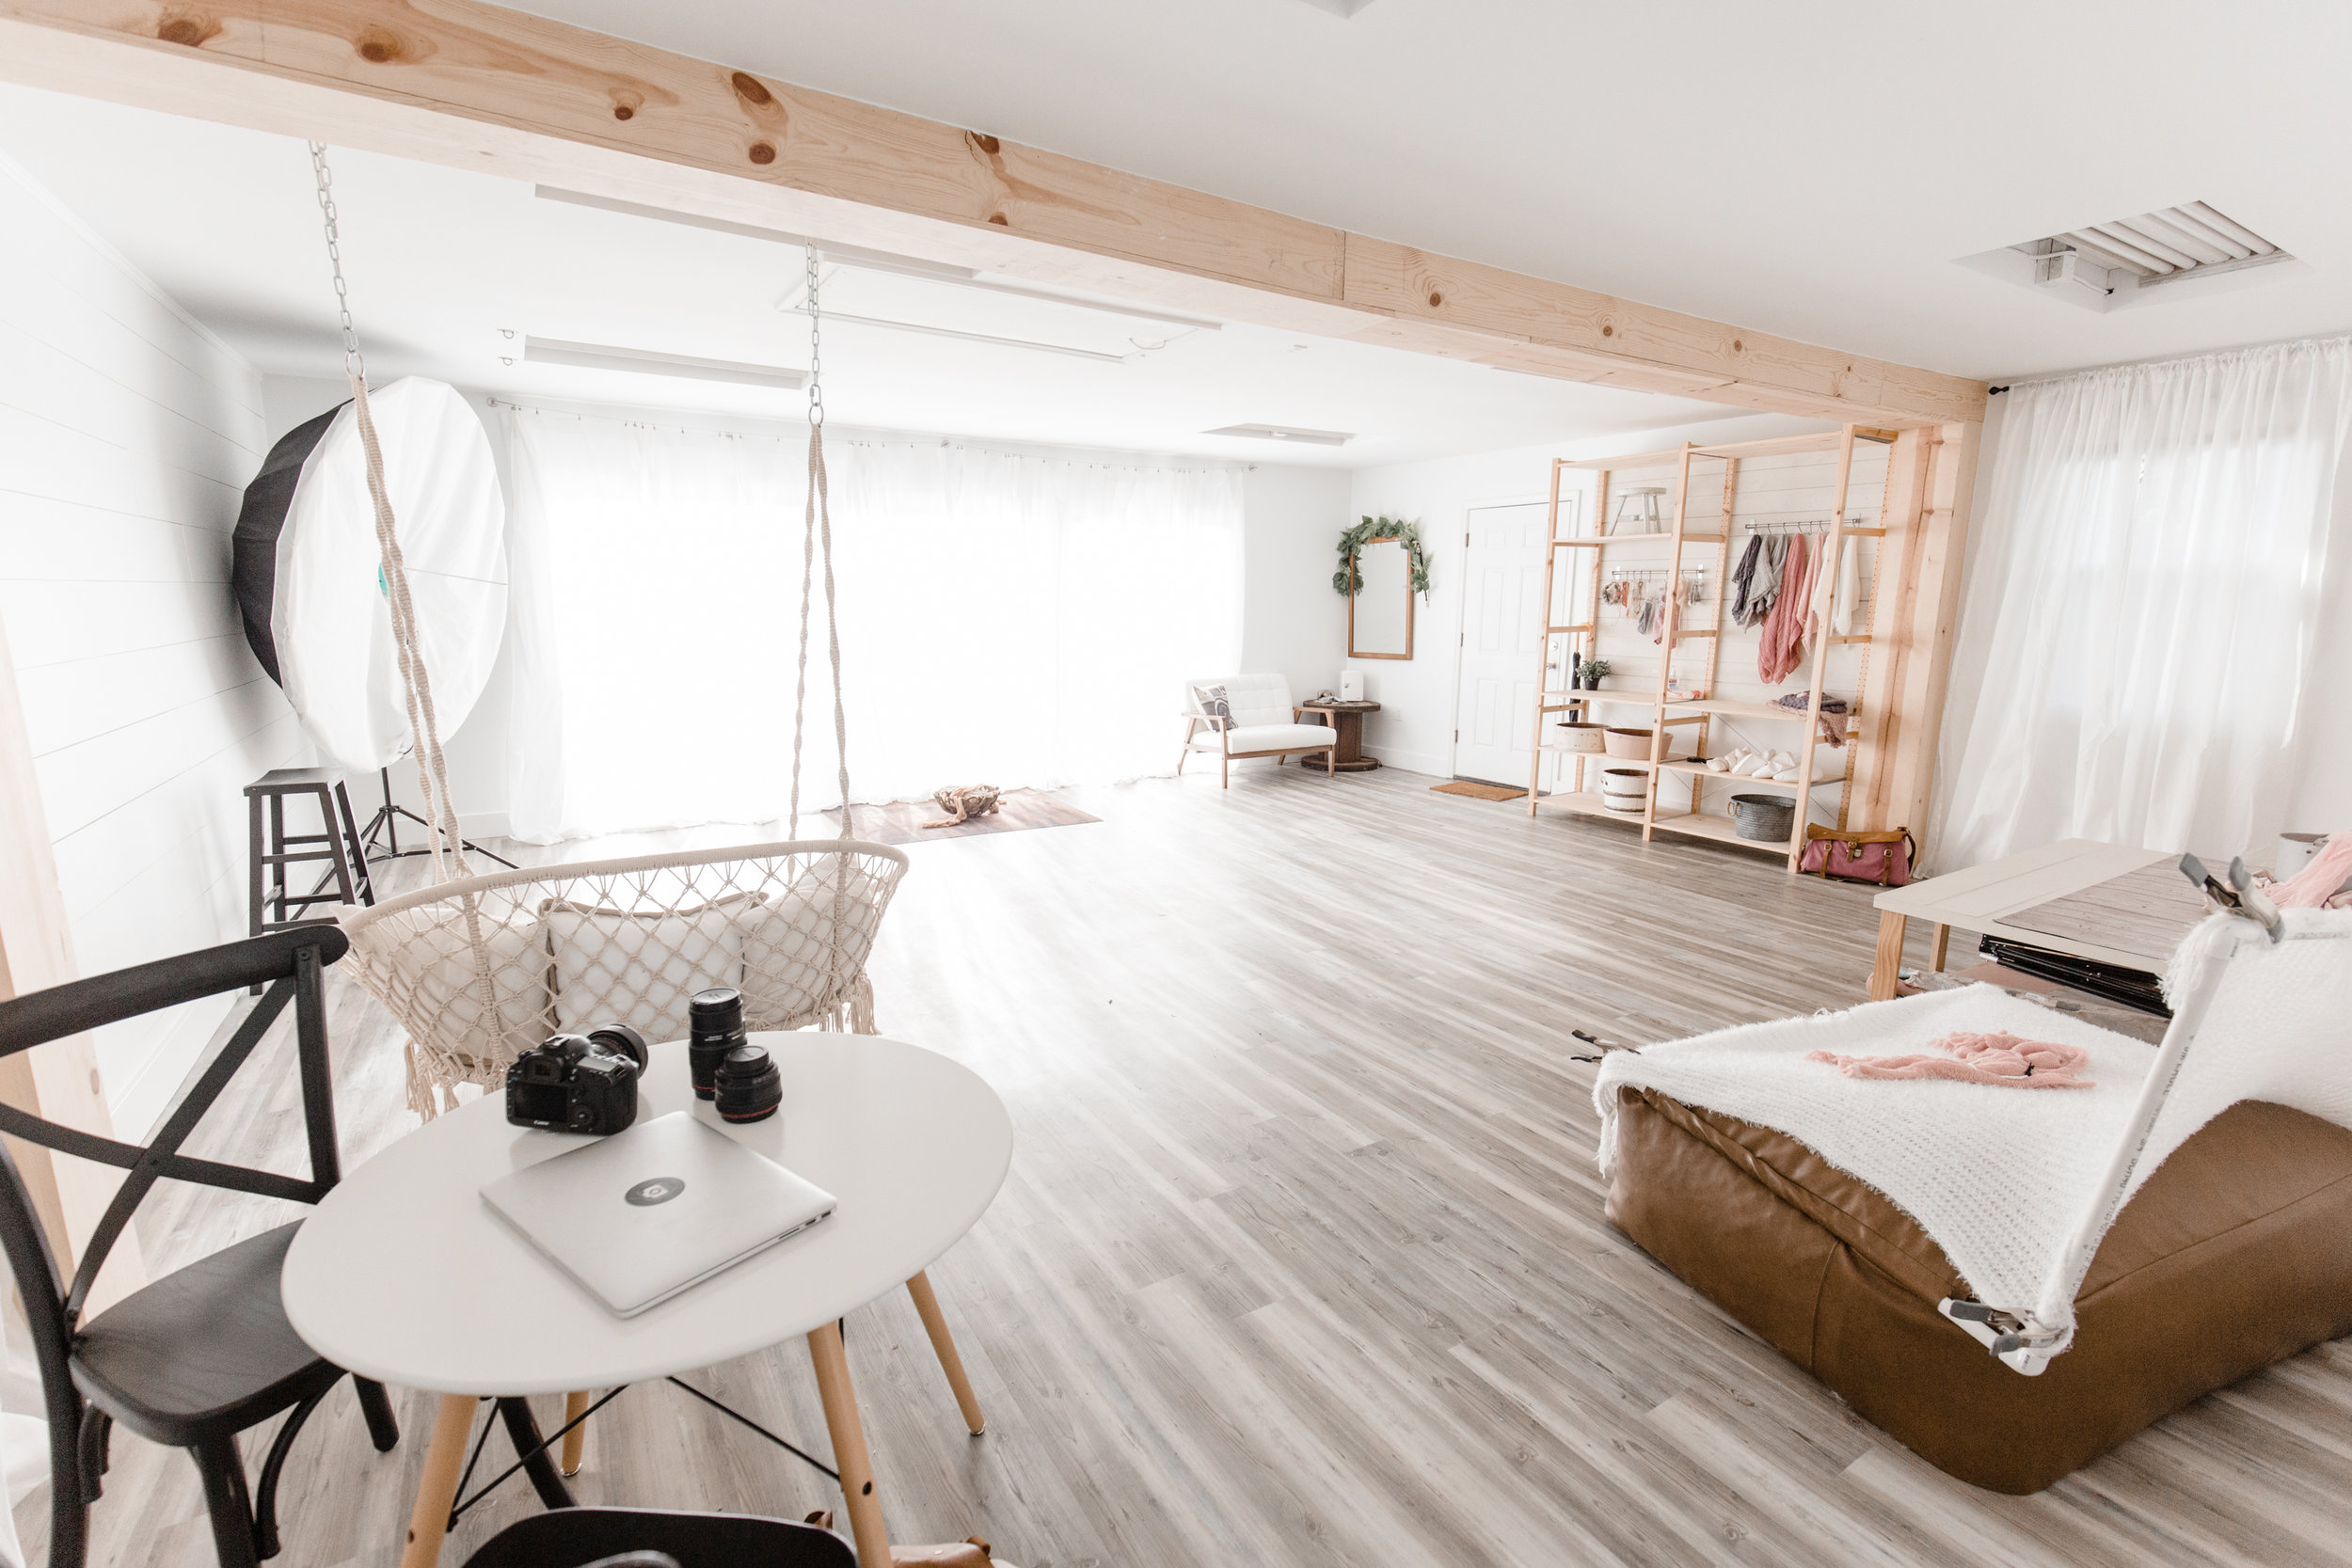 Studio - privately located close to downtown Annapolis with over 600 square feet of studio space dedicated to first year photography the studio has everything we need including an incredible 15 foot wall of gorgeous natural light.